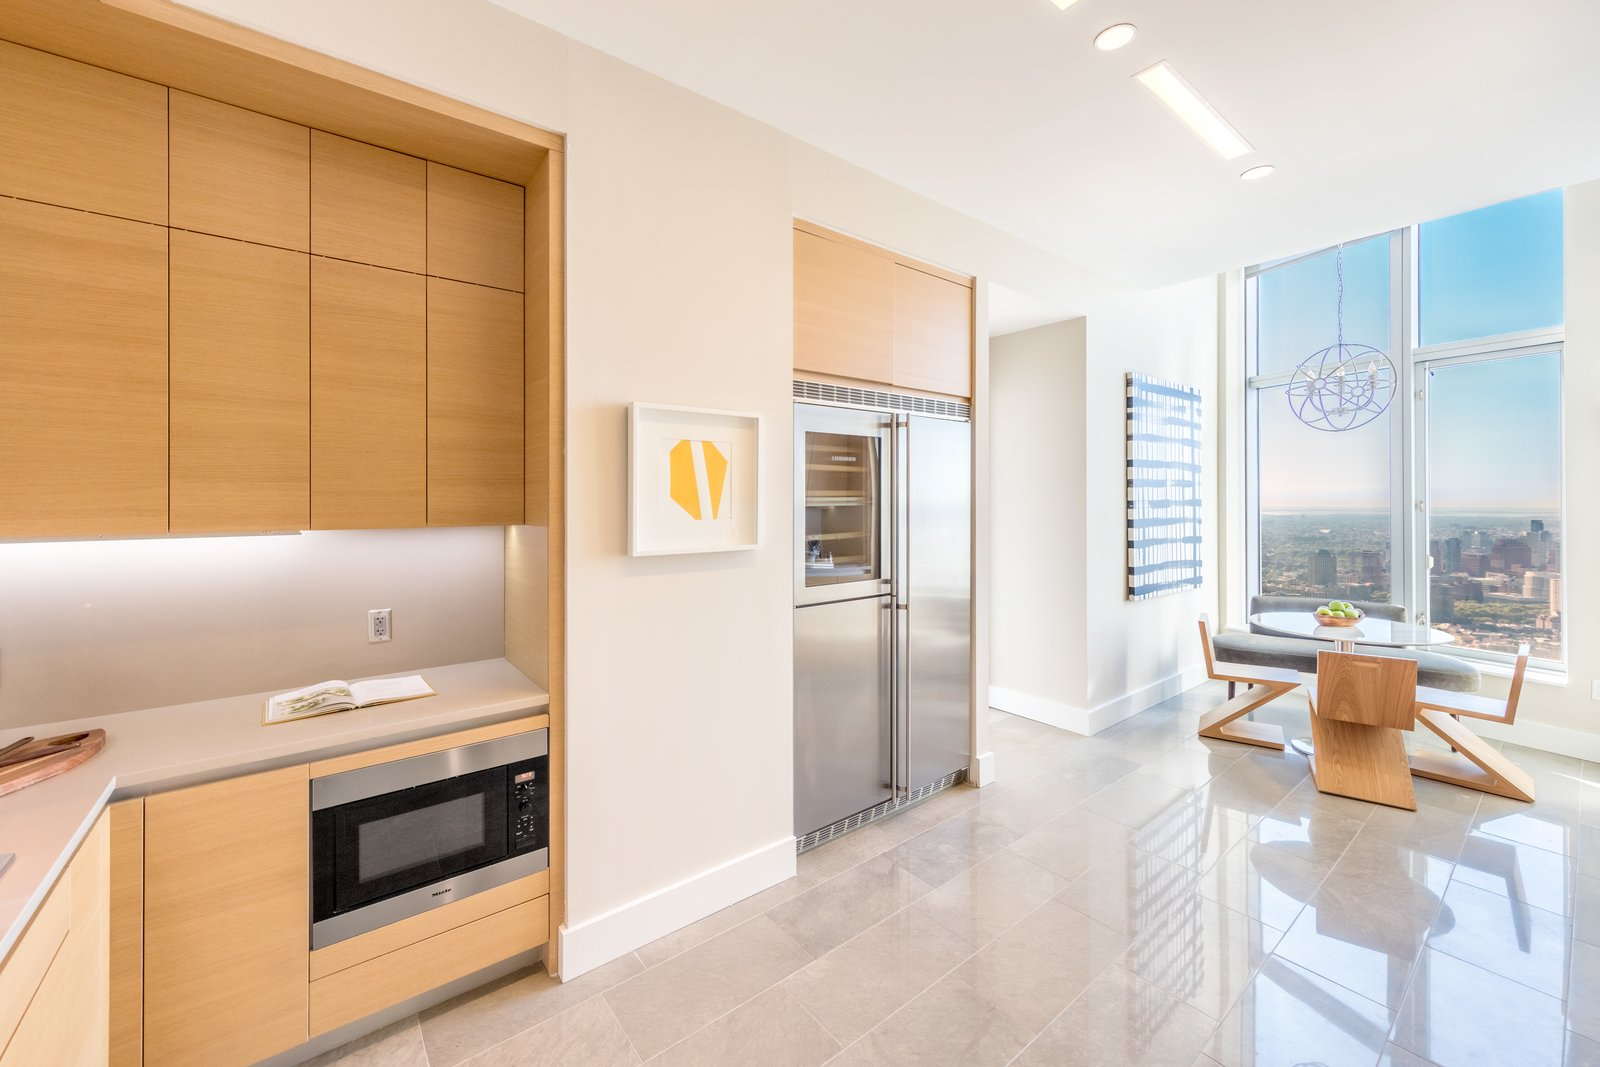 Photo 6 of 9 in Tour This Frank Gehry-Designed Penthouse in NYC That's Back on the Market